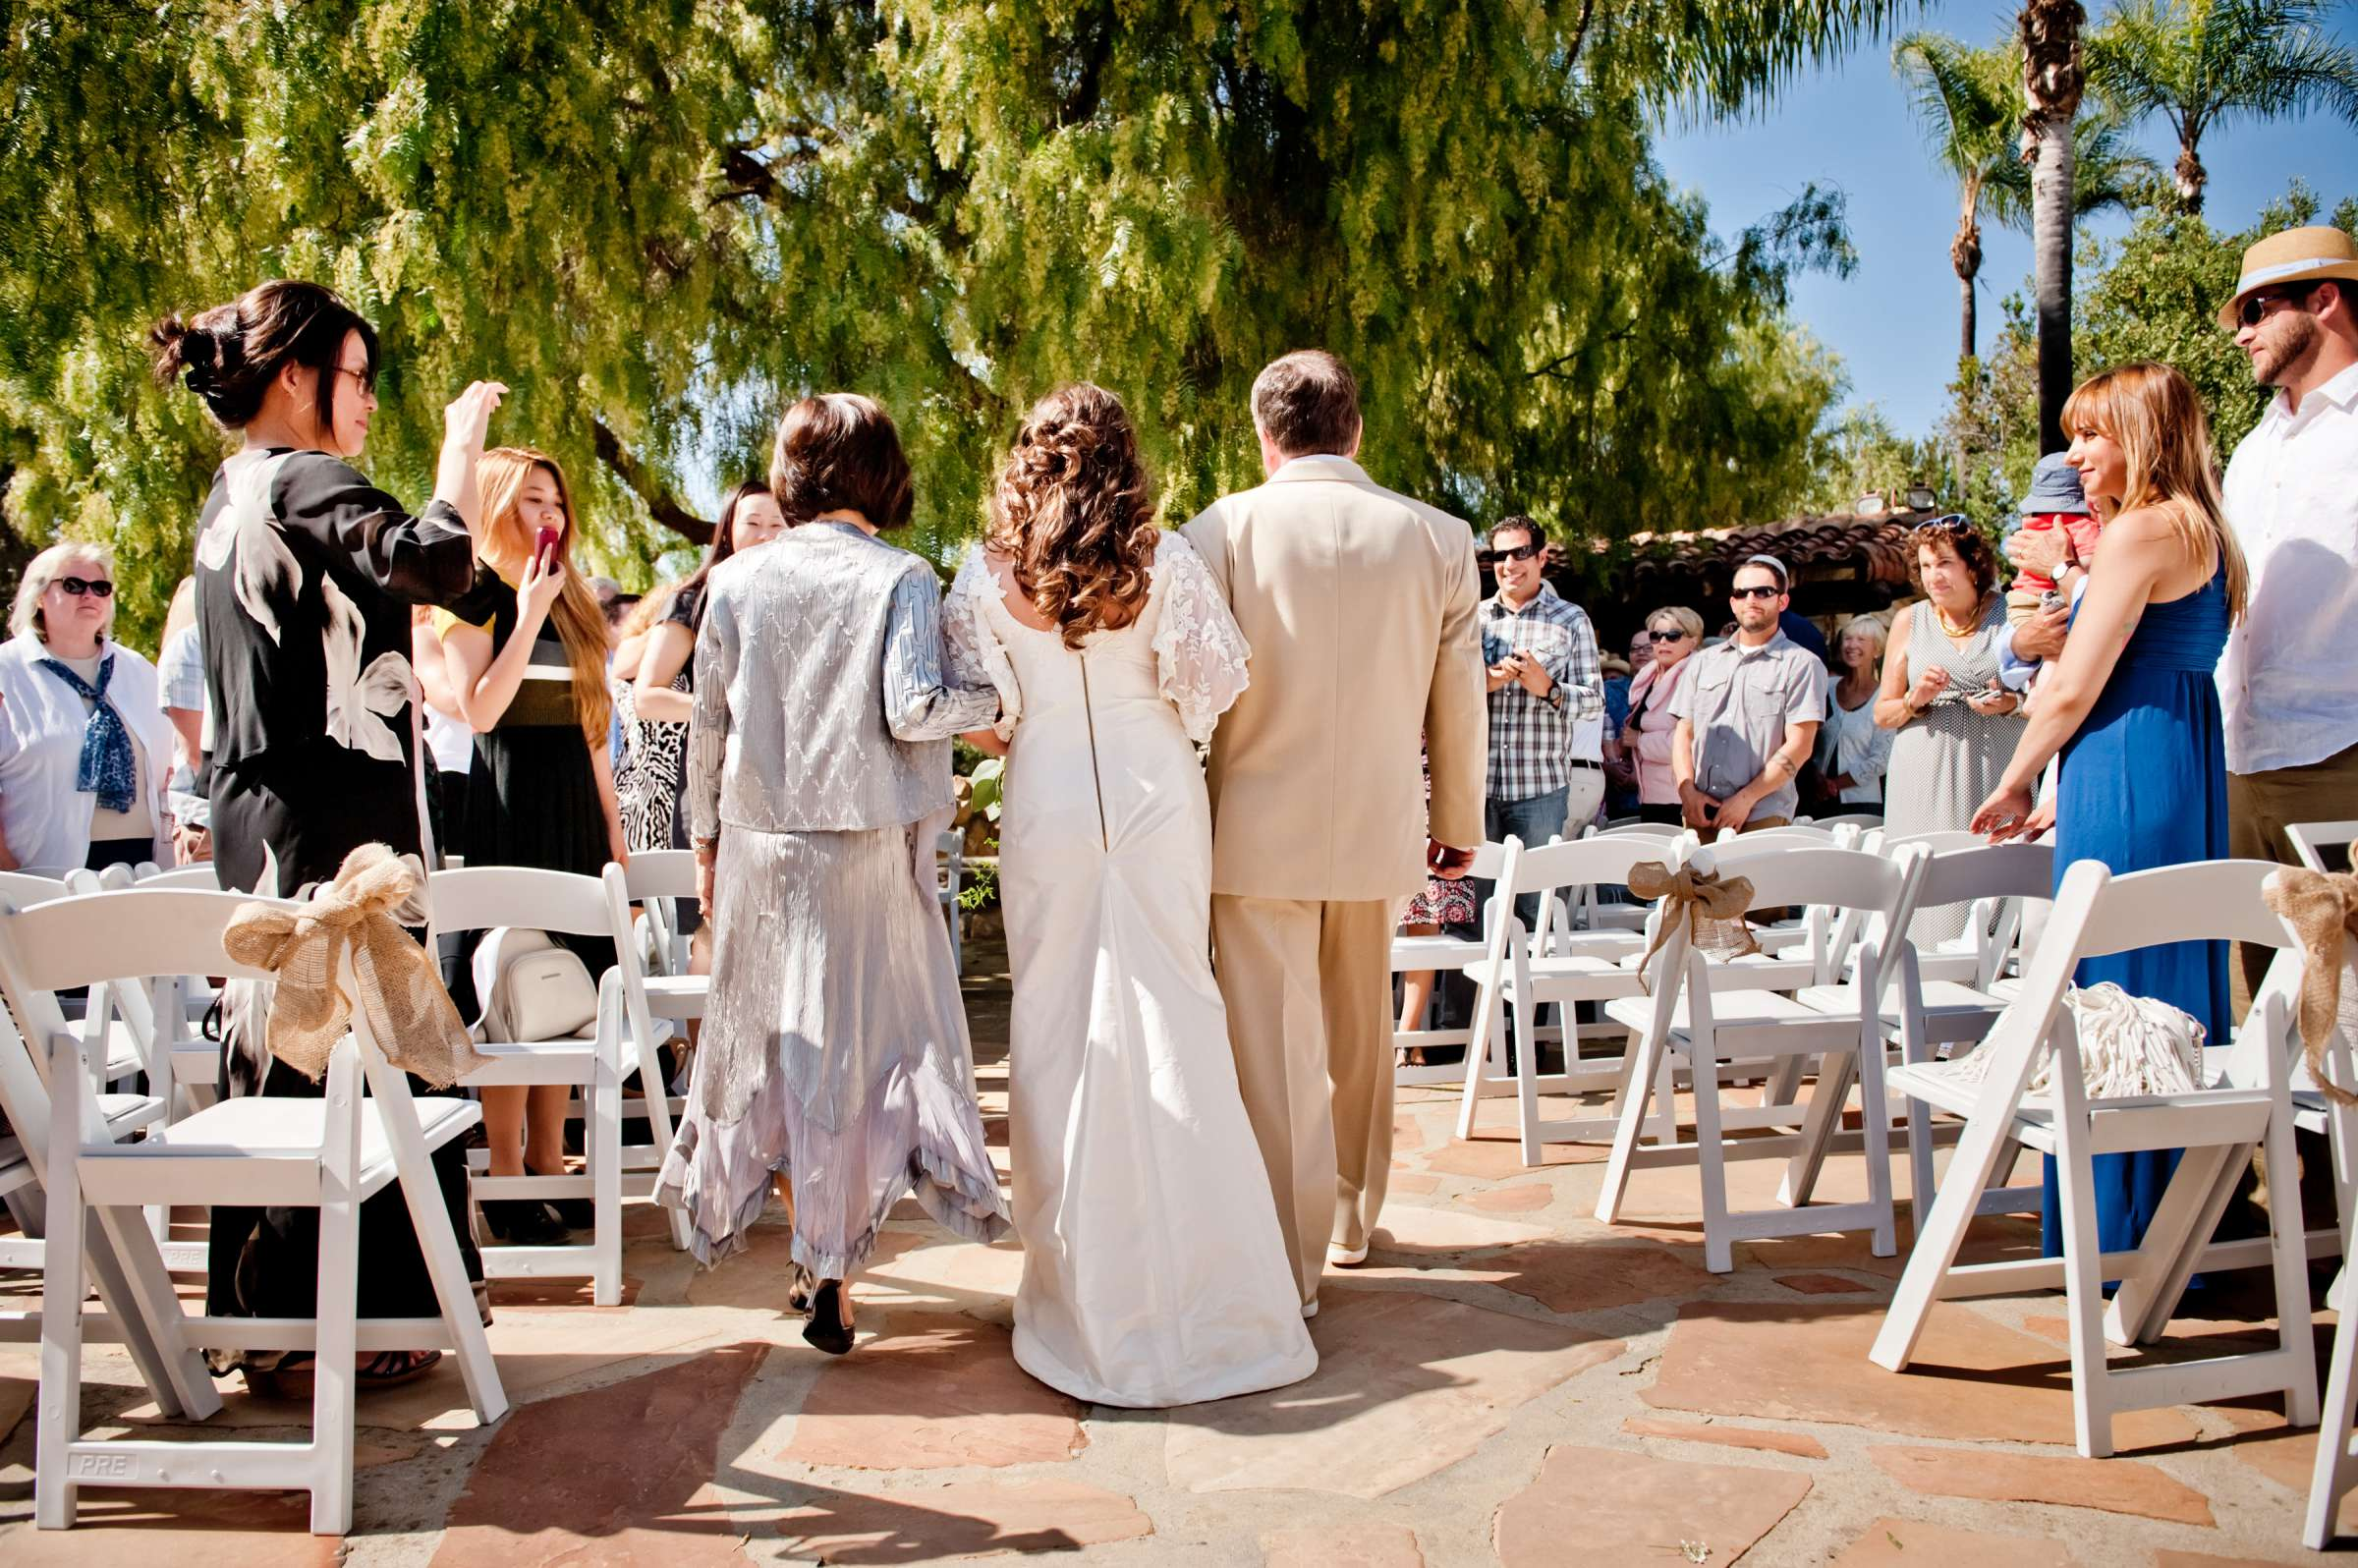 Leo Carrillo Ranch Wedding coordinated by Weddings by Lisa Nicole, Bethany and Aaron Wedding Photo #23 by True Photography